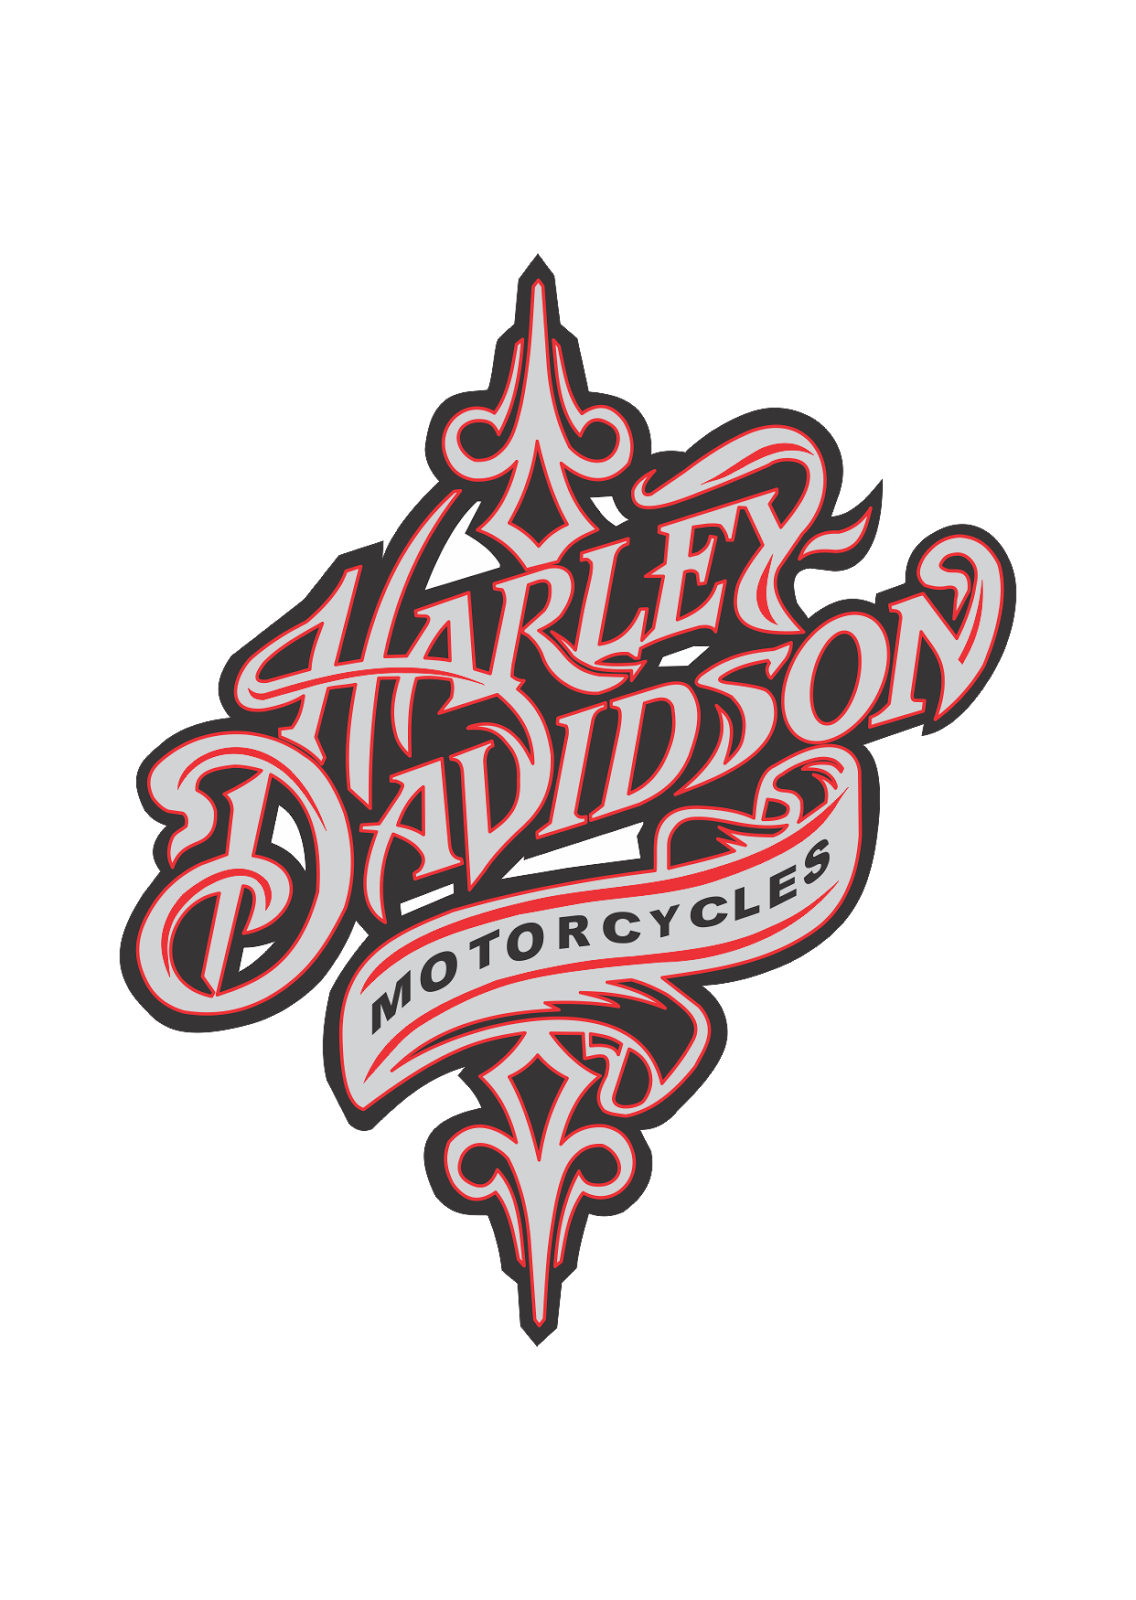 download Logo Harley davidson motorcycles Vector